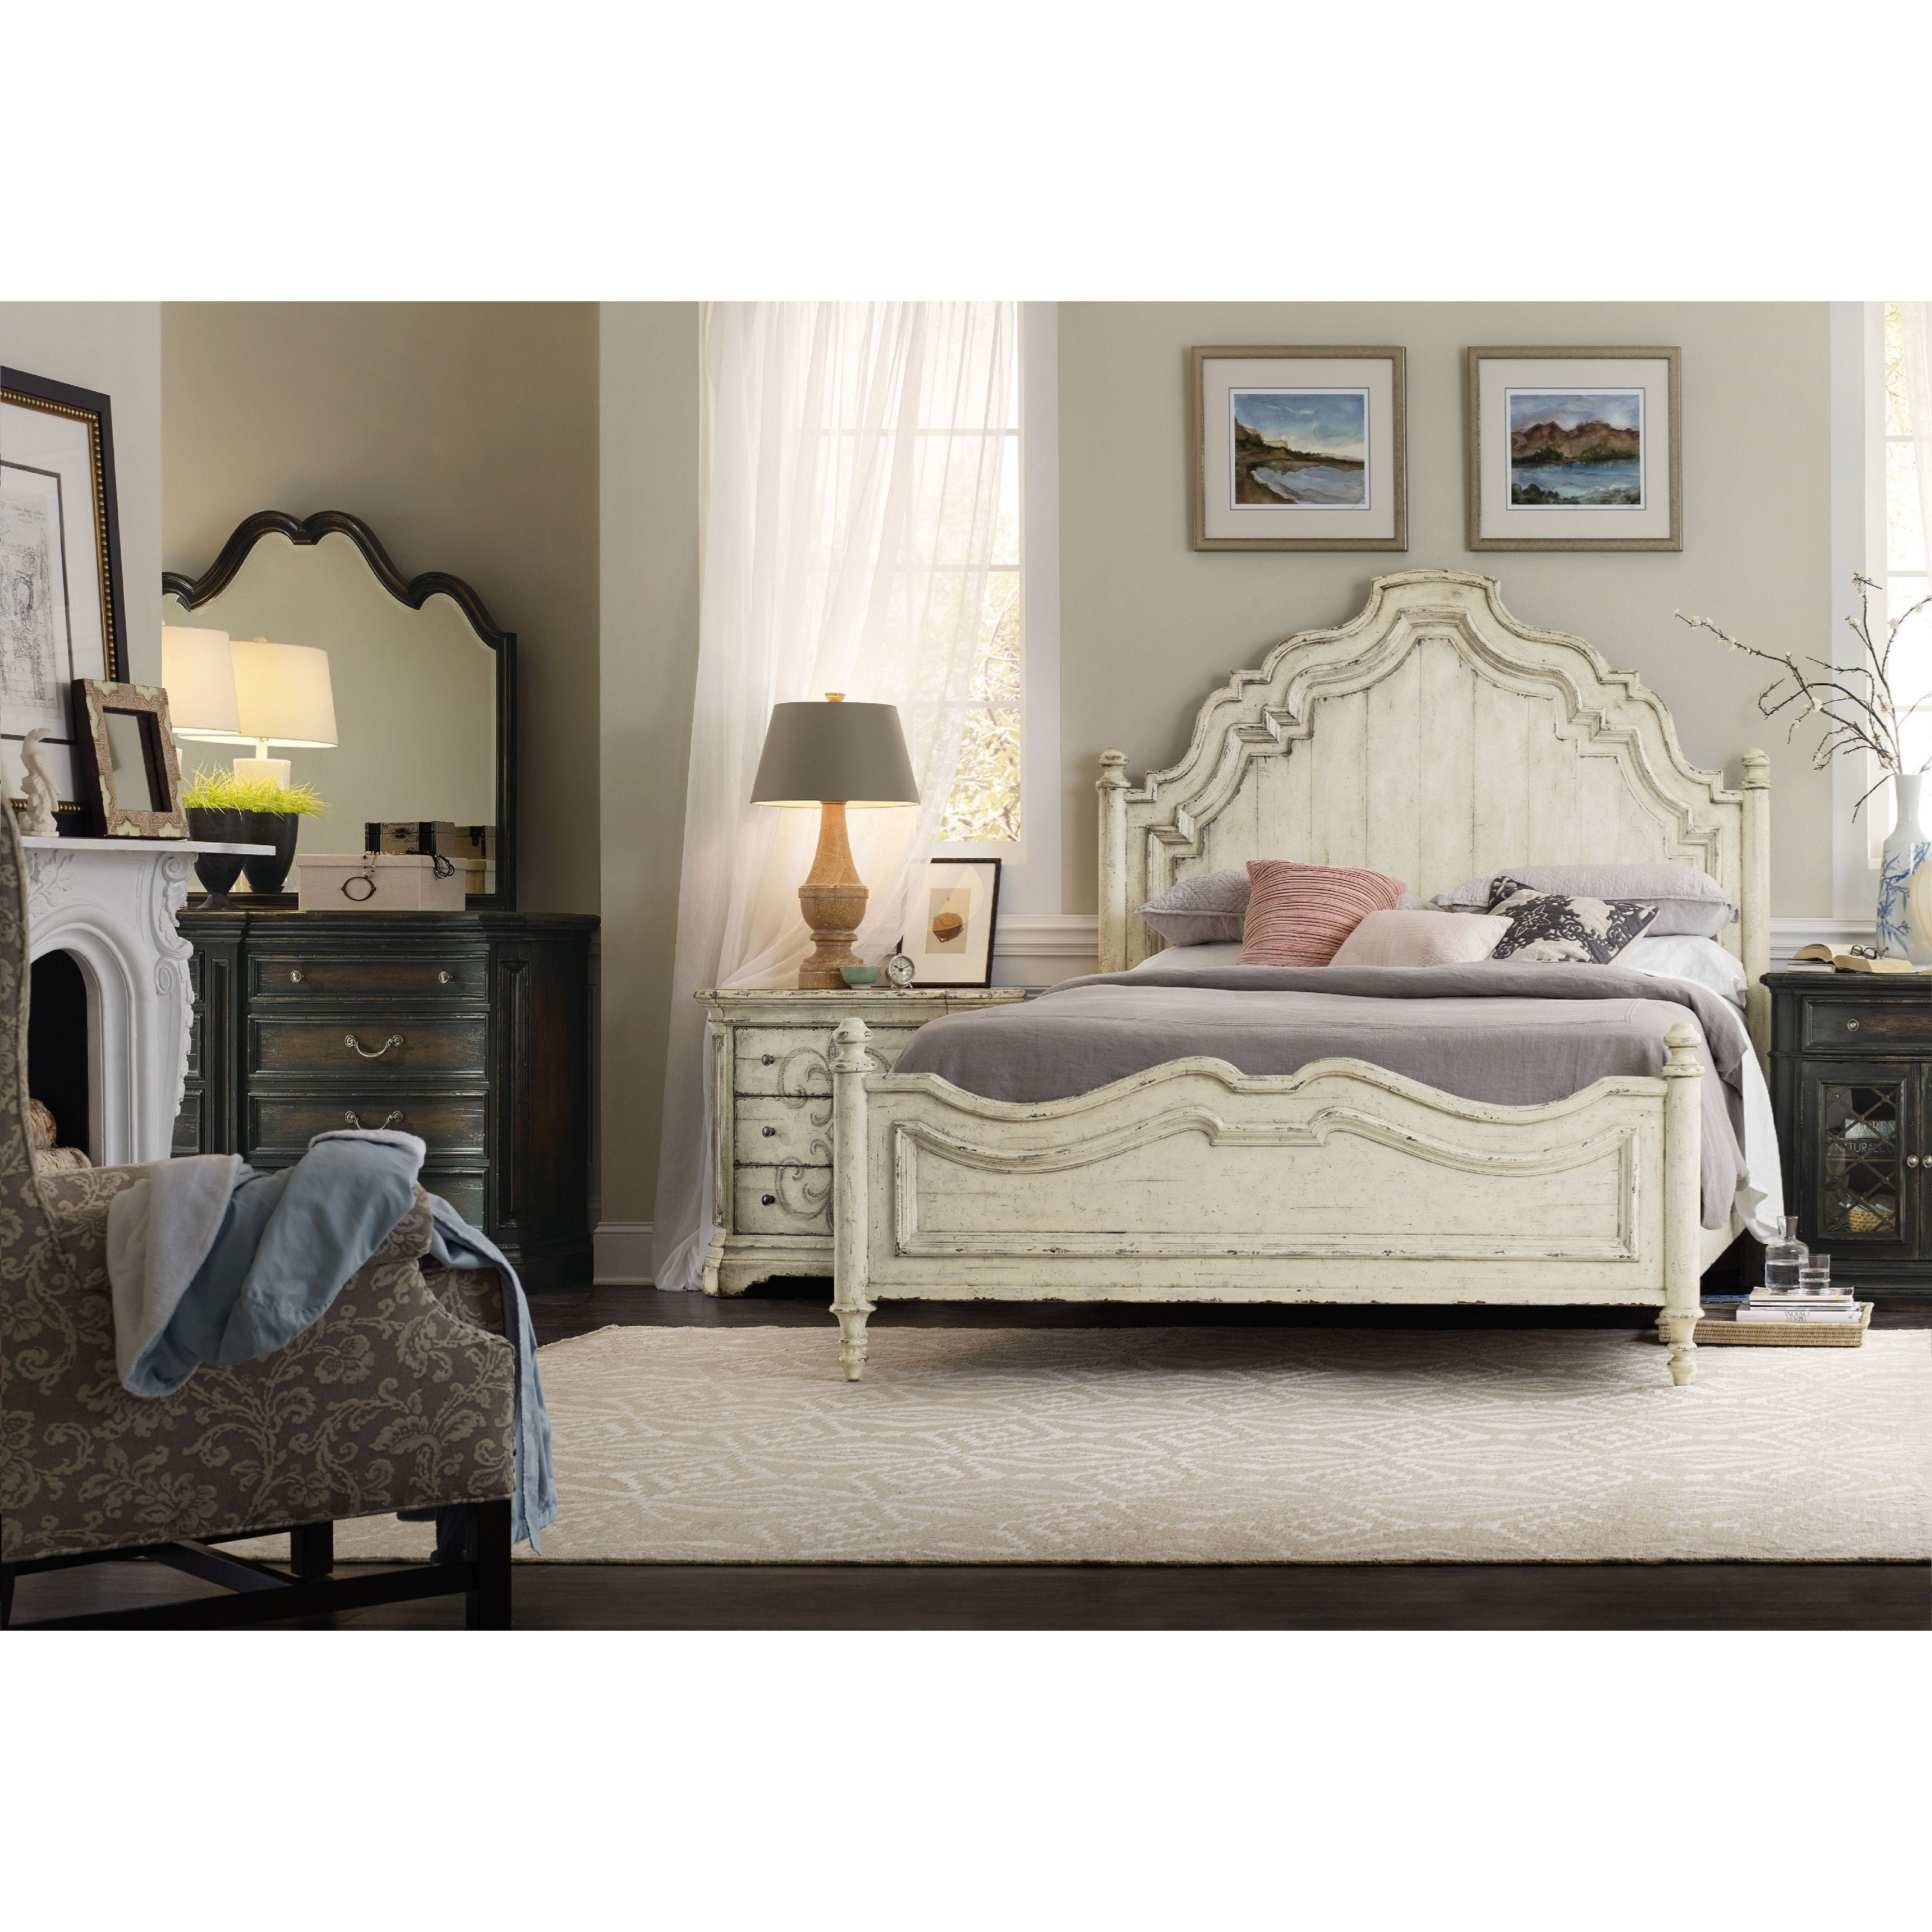 Hooker furniture auberose king bedroom group olinde 39 s for Bedroom furniture groups